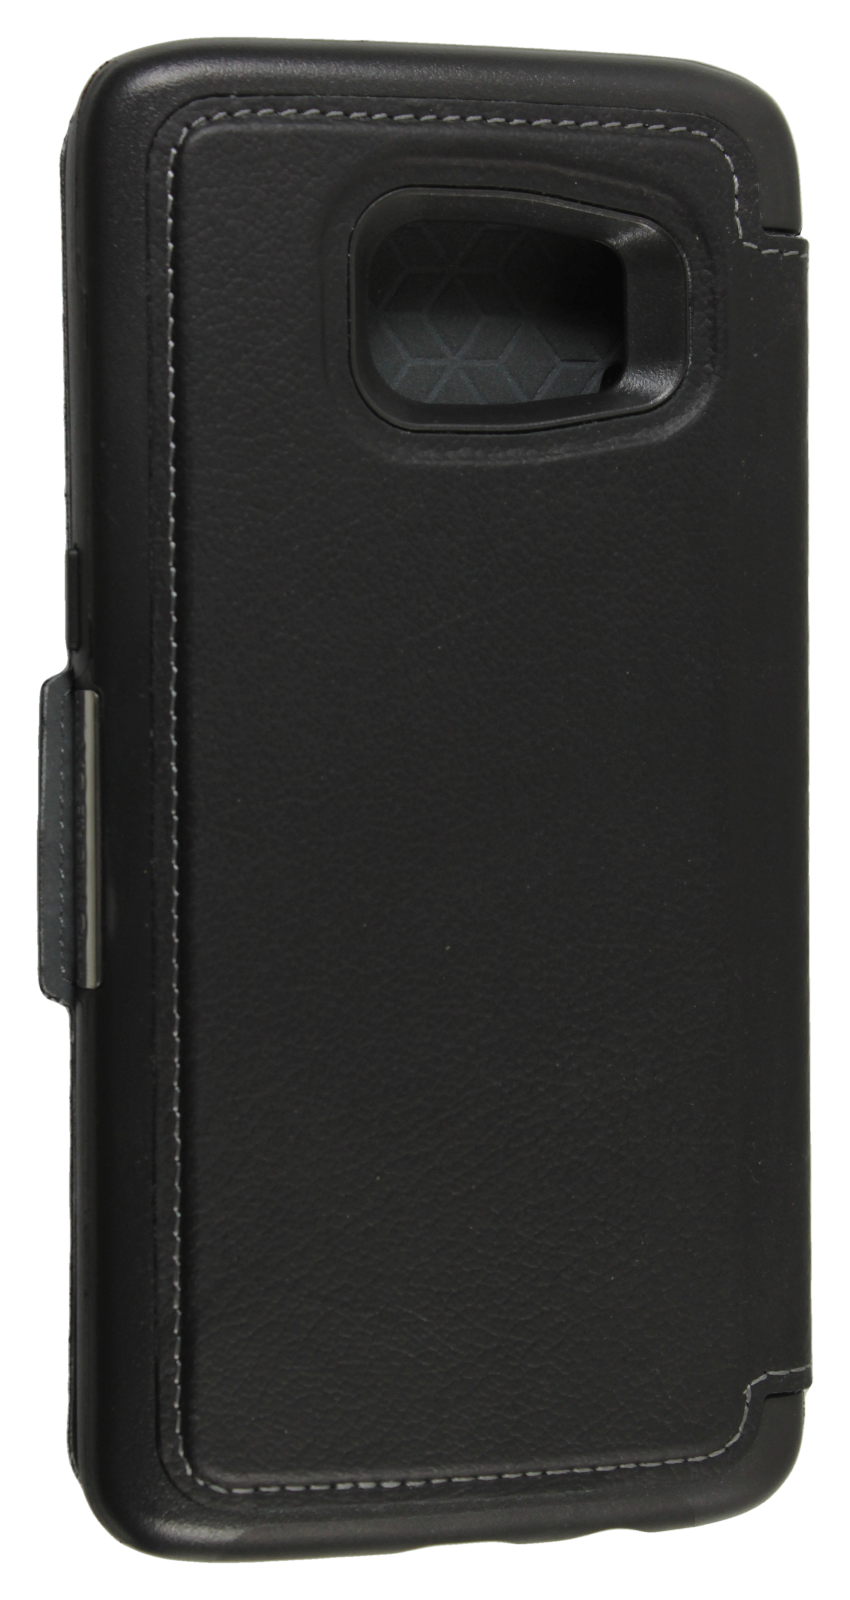 hot sale online 66b37 d587b Details about New! OtterBox STRADA Series Case For Samsung Galaxy S7 EDGE  Black 77-53191